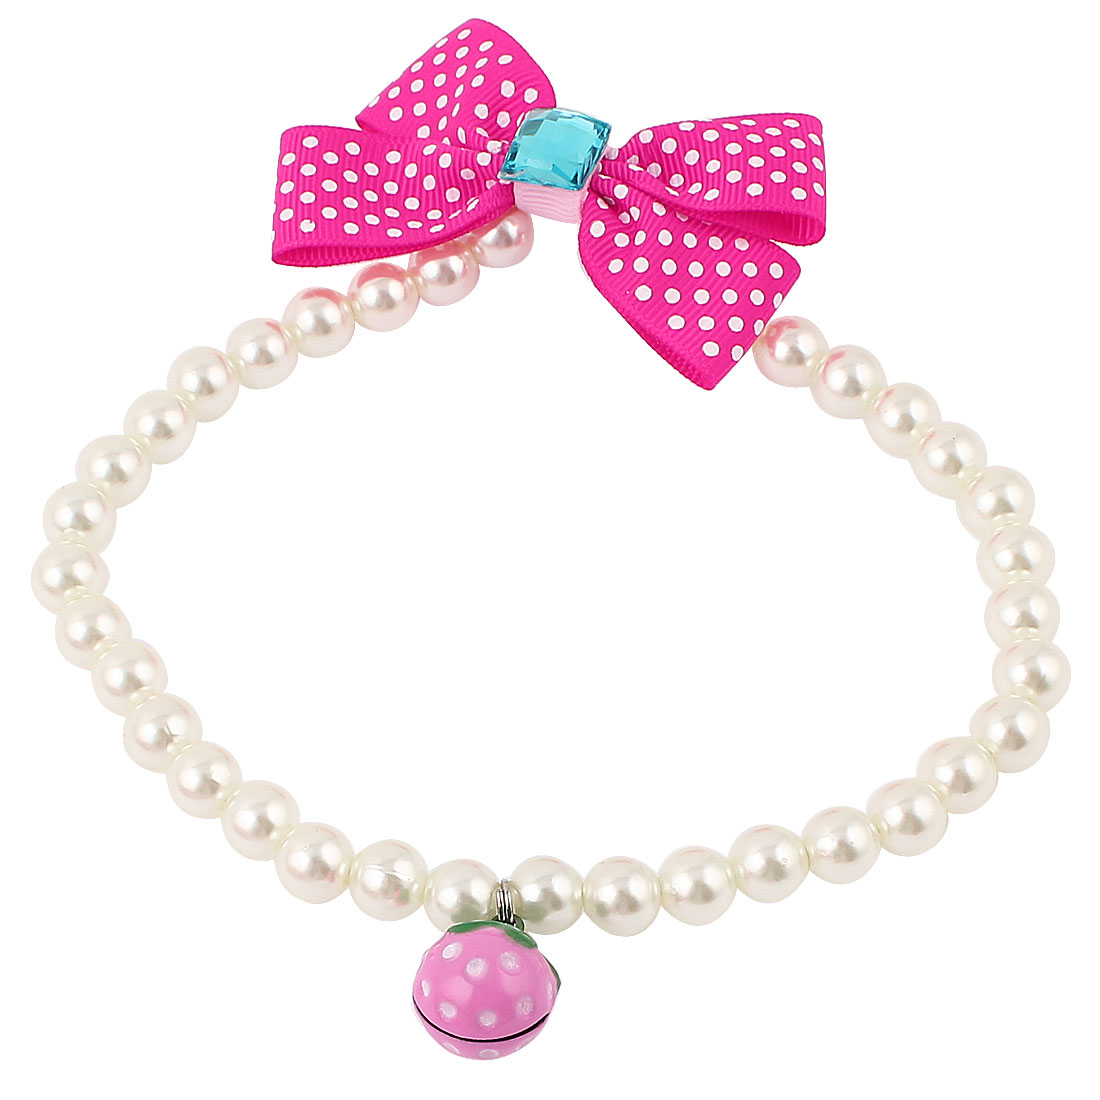 Metal Bell Pendant Bowtie Accent Pet Dog Plastic Beads Pearls Collar Necklace White Fuchsia L